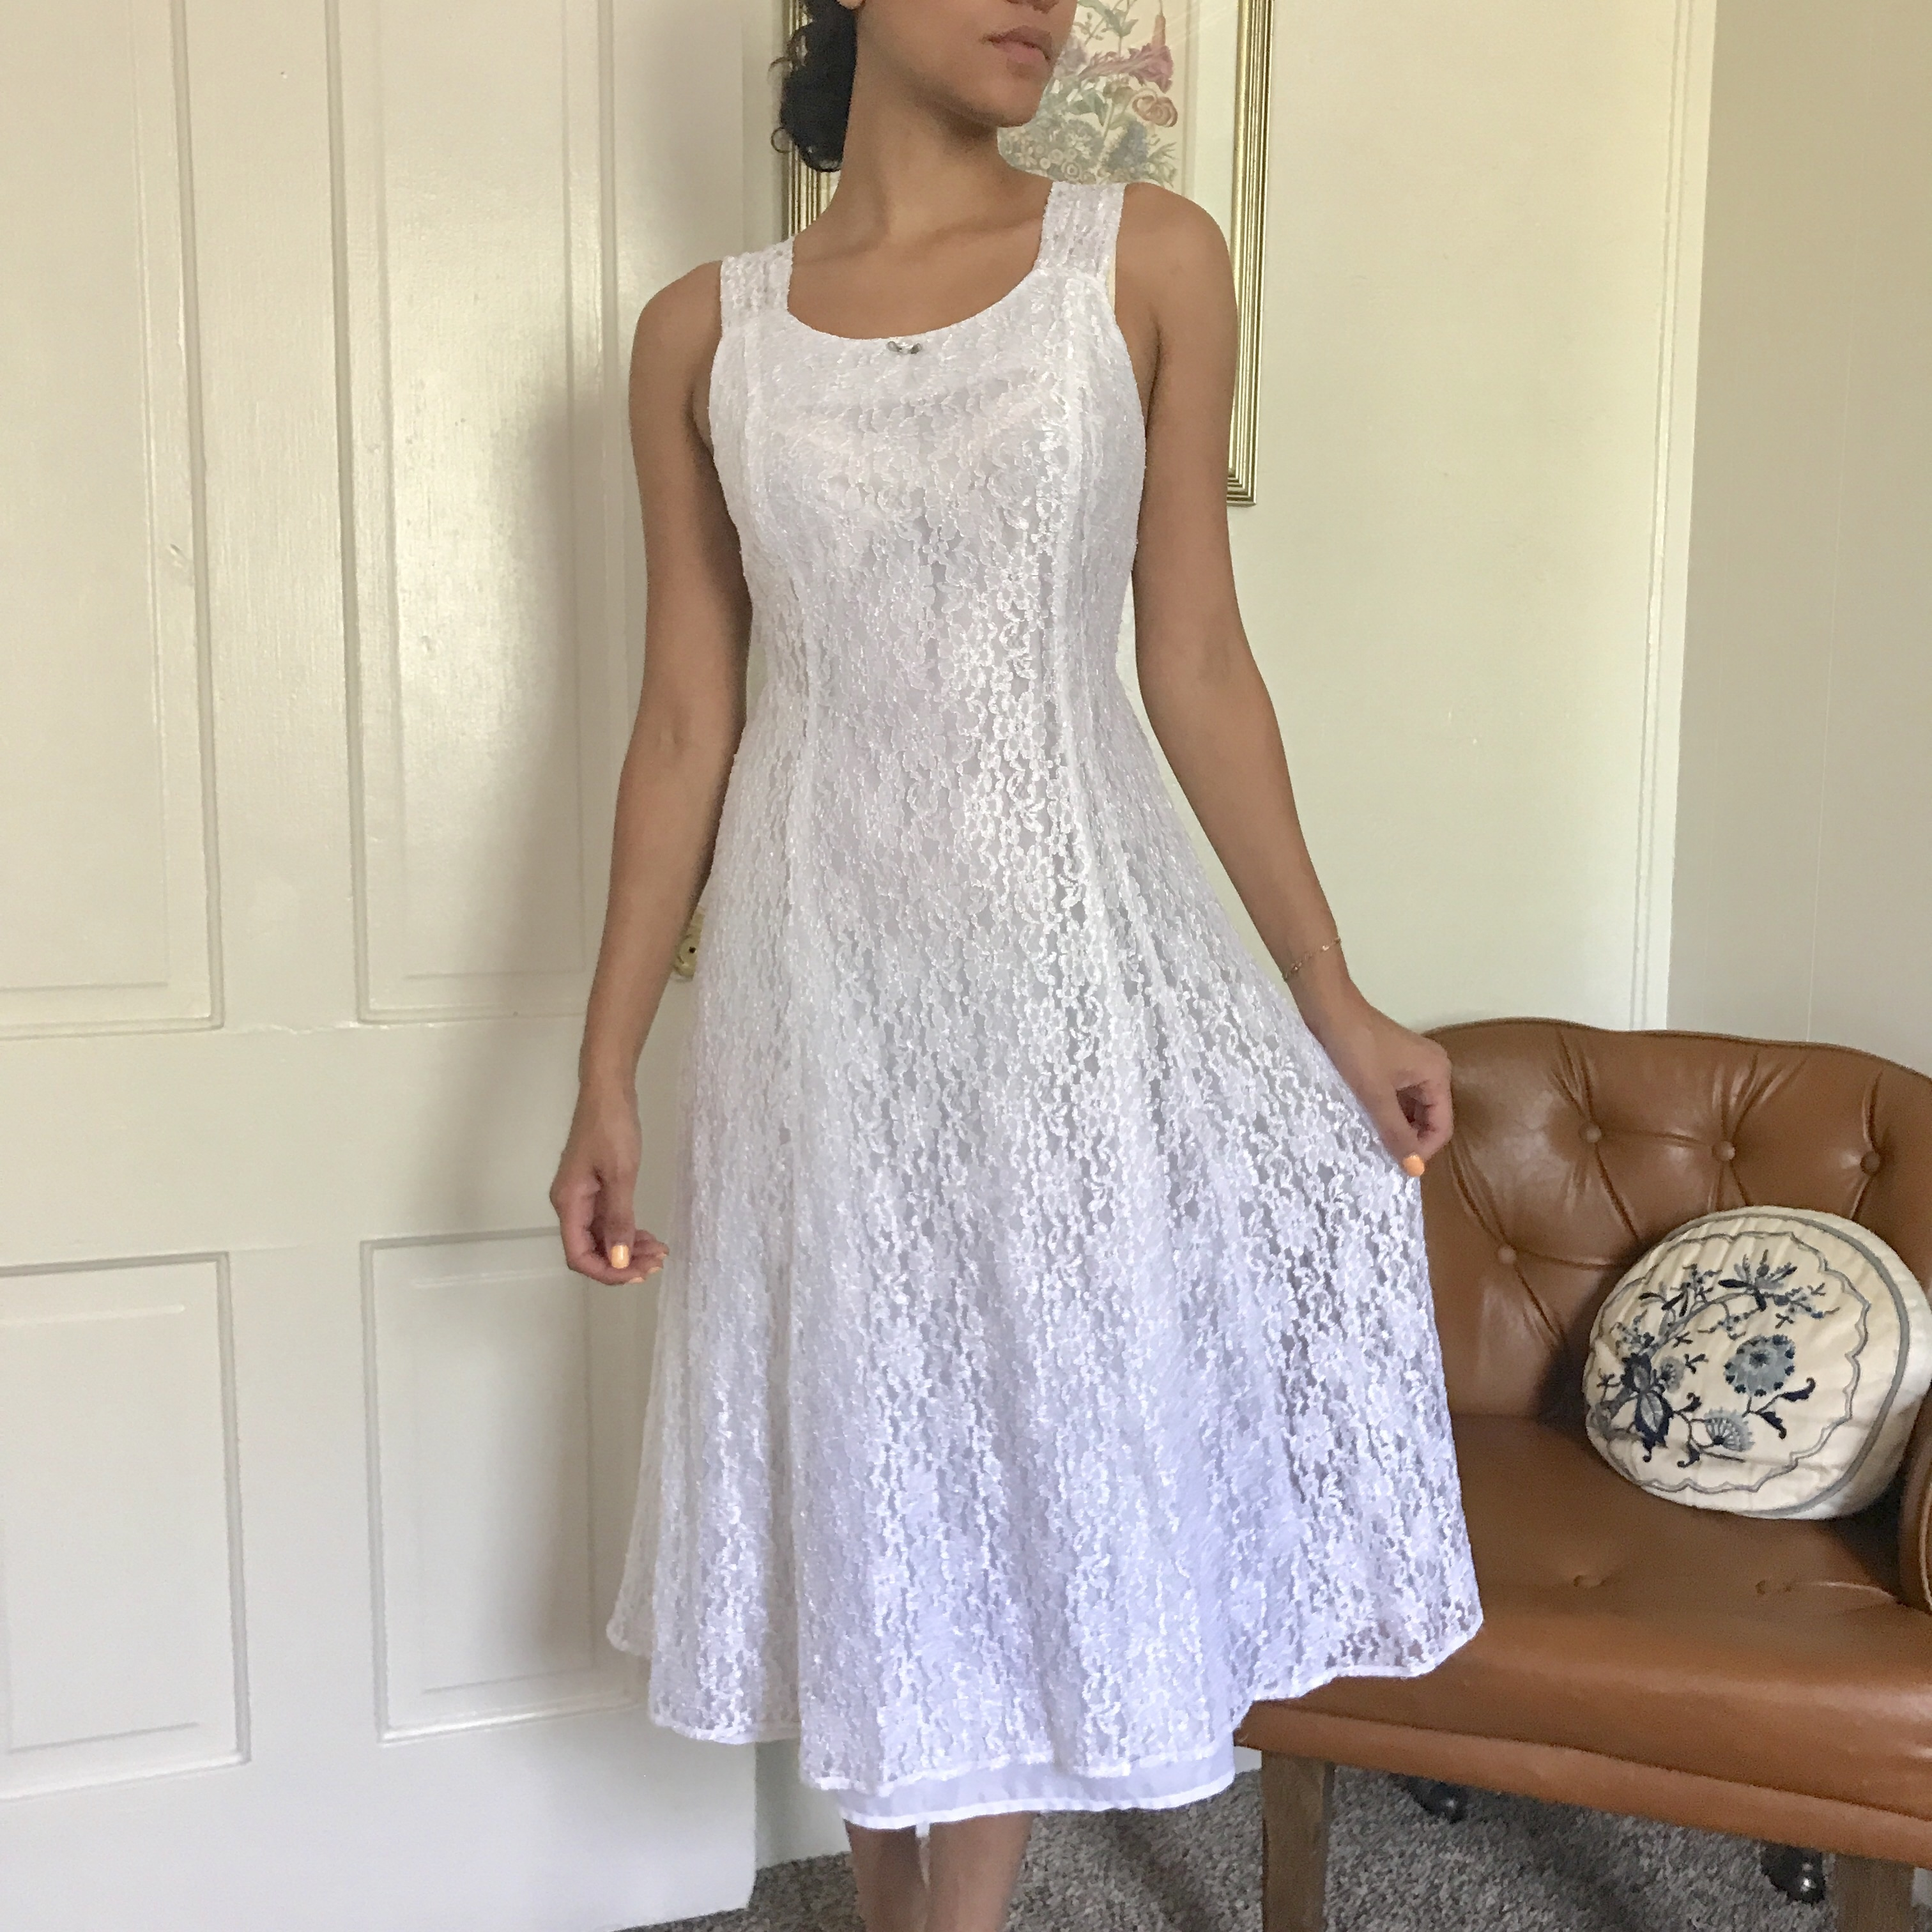 Product Image 1 - 90's white lace dress, double